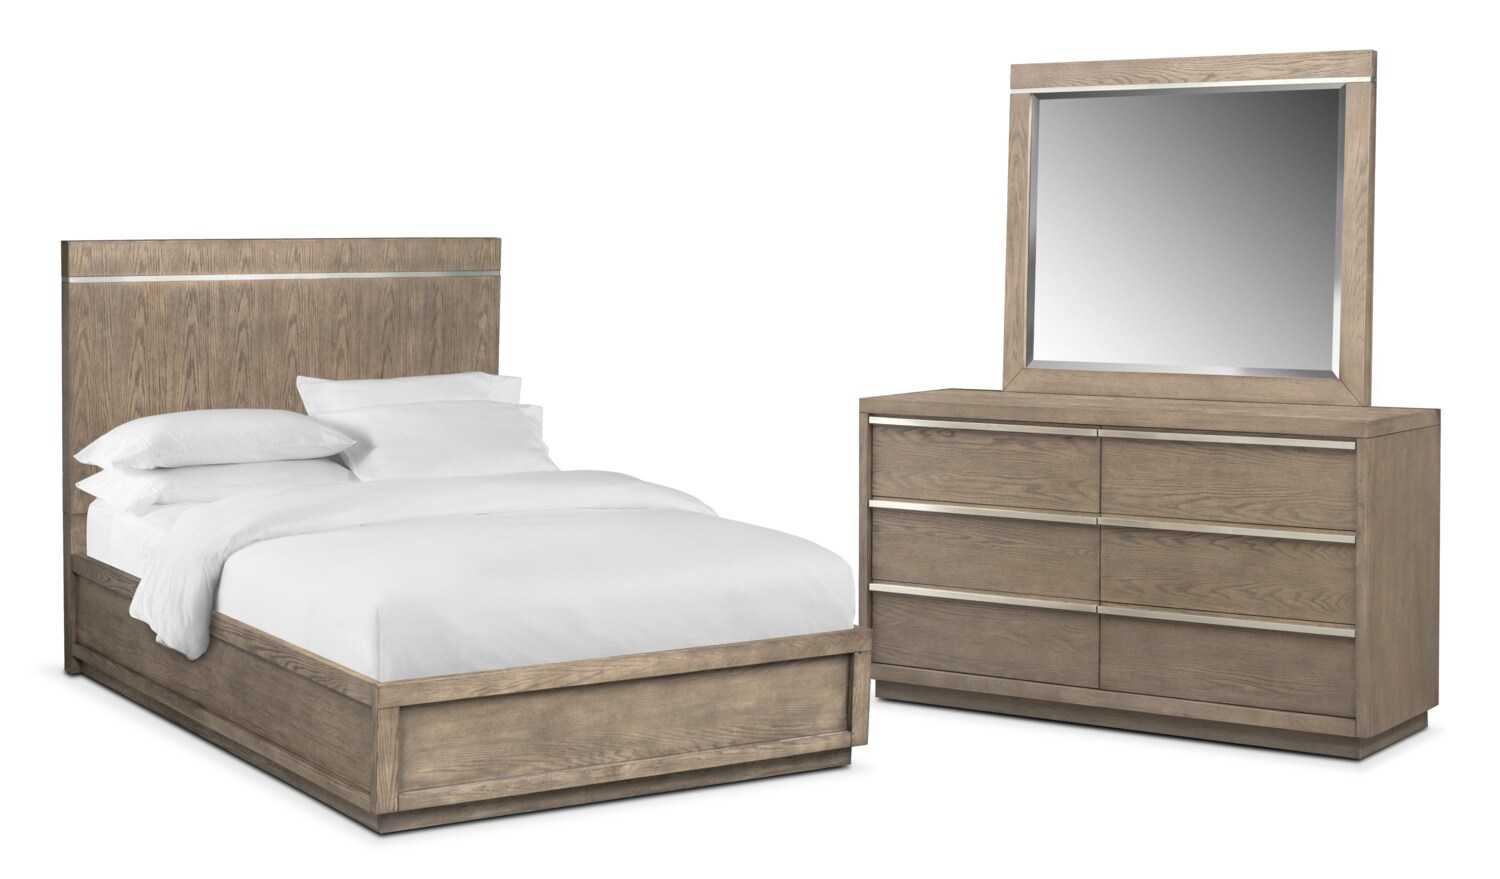 Bedroom Furniture - Gavin 5-Piece King Bedroom Set - Graystone